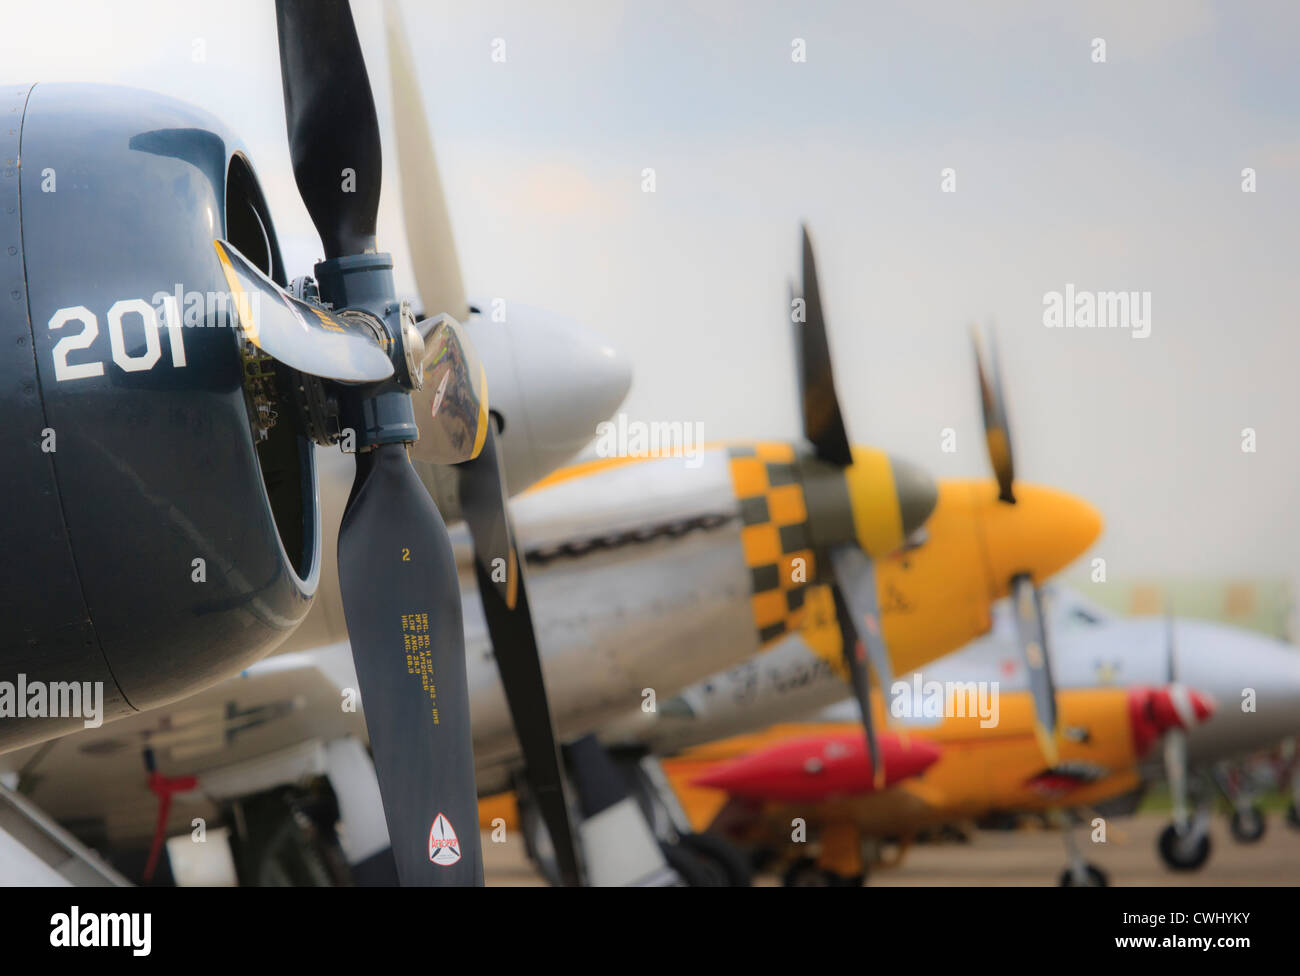 Propellor blades side view of line of planes at Duxford airshow - Stock Image